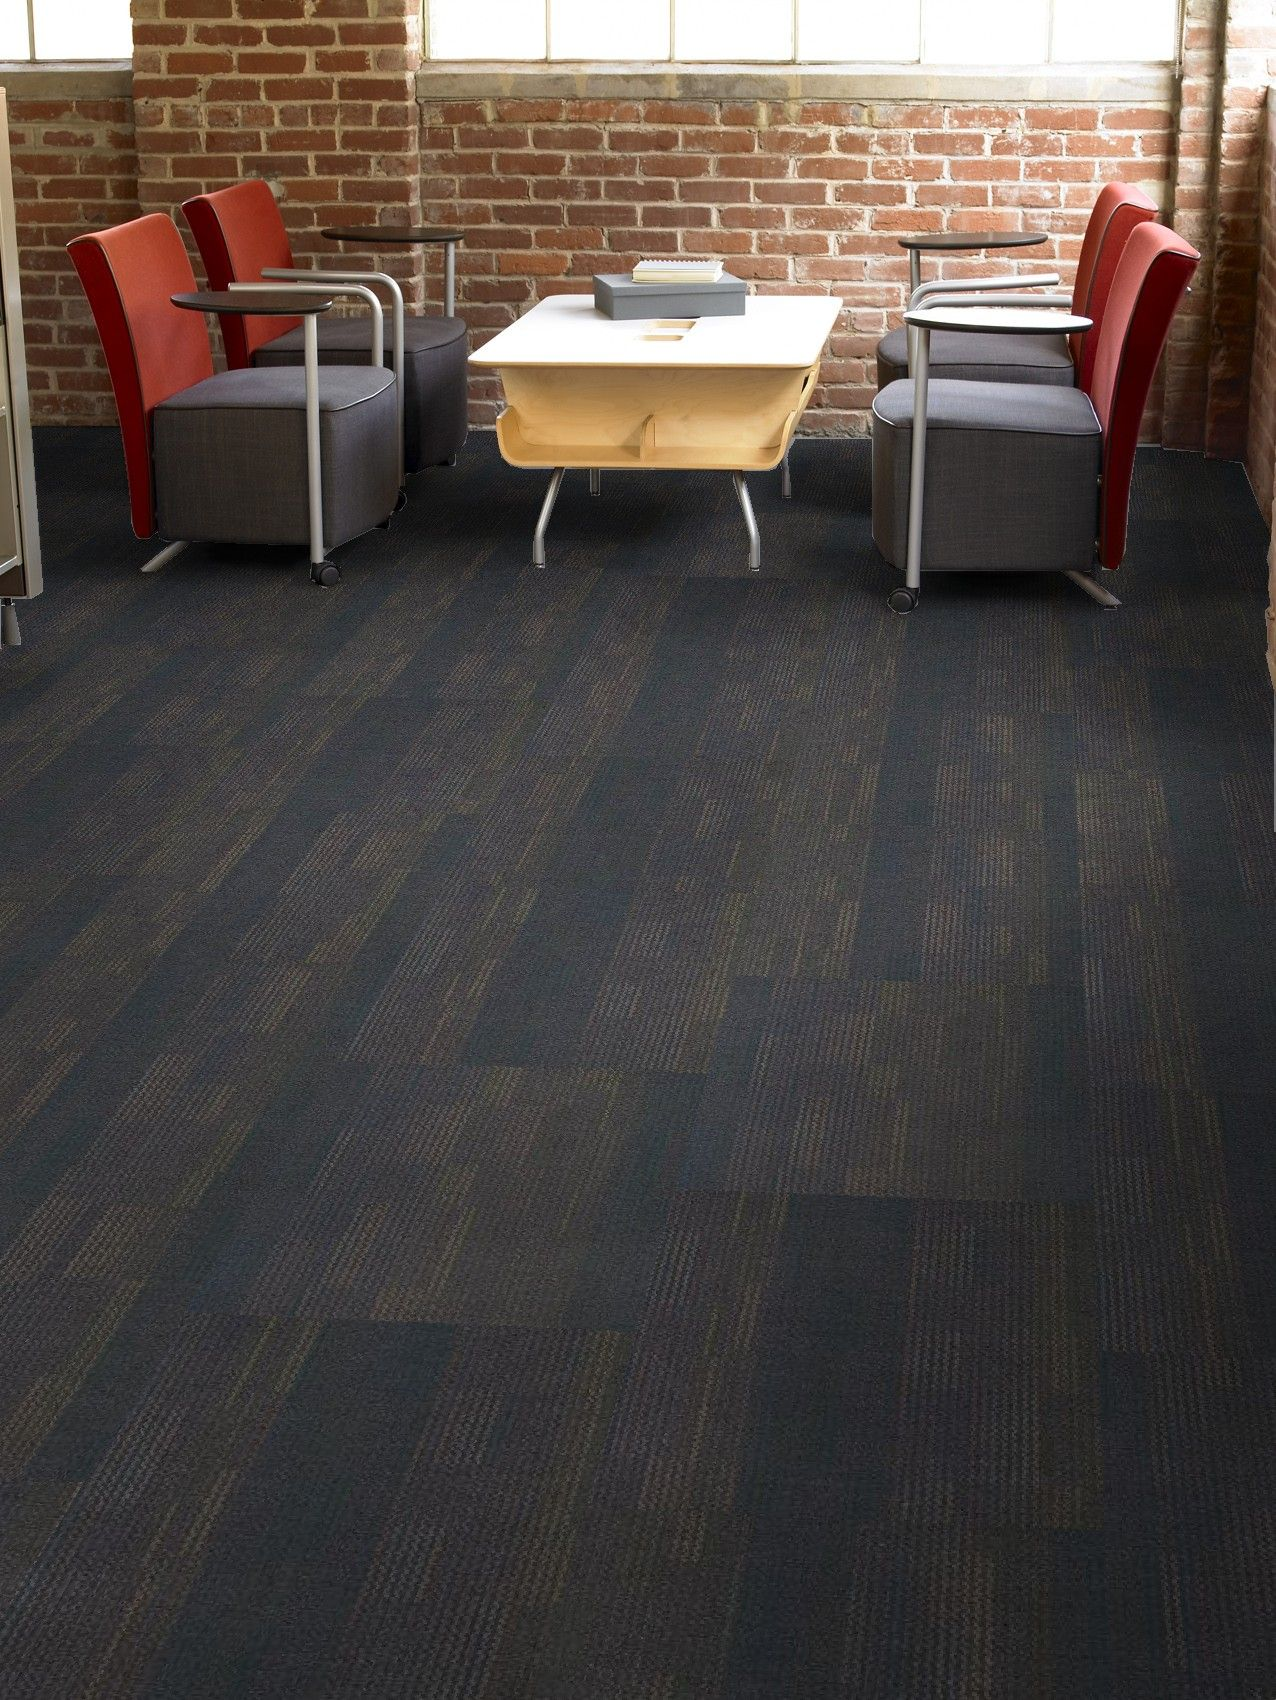 Pin by Kerry L Dowd on Waldo Branch Carpet & Flooring